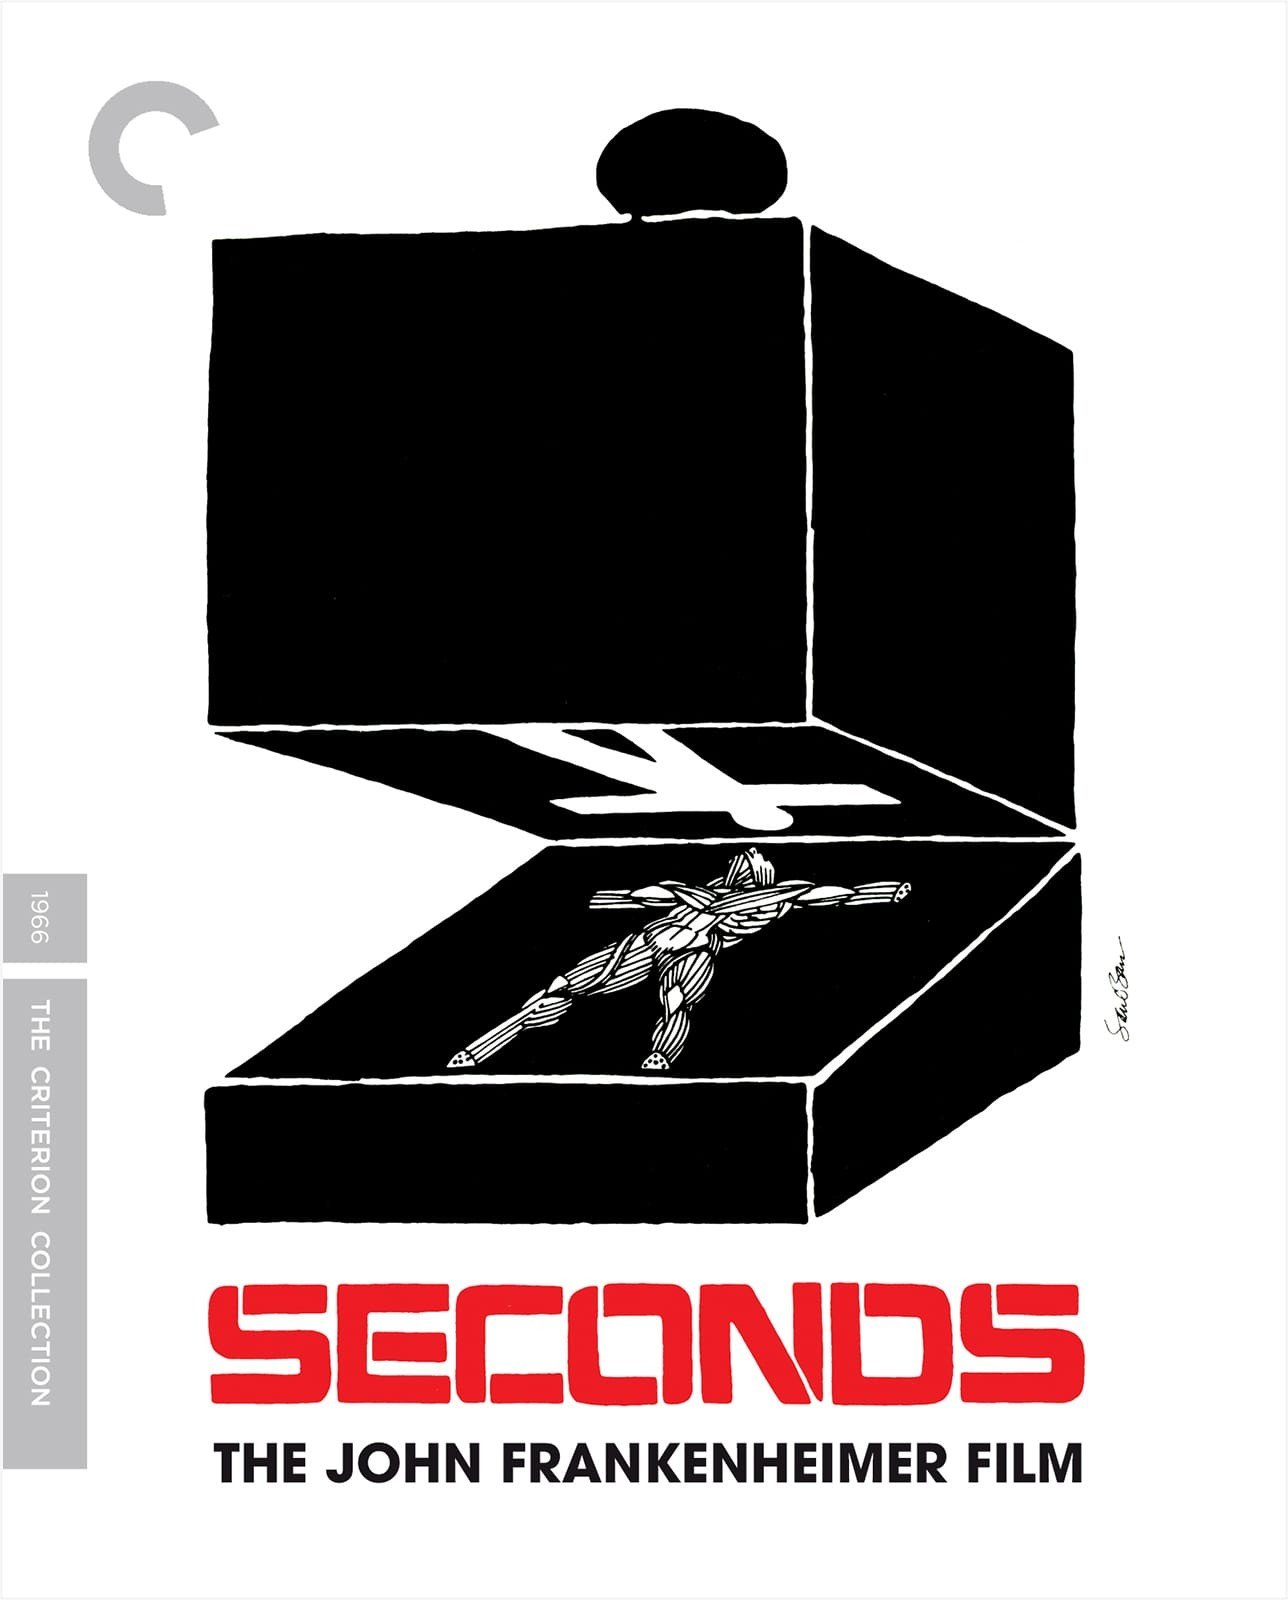 9c203eb2 ... existential crisis, Seconds is arguably a second-tier John  Frankenheimer funhouse of paranoia, but the same might be said of any film  that isn't The ...